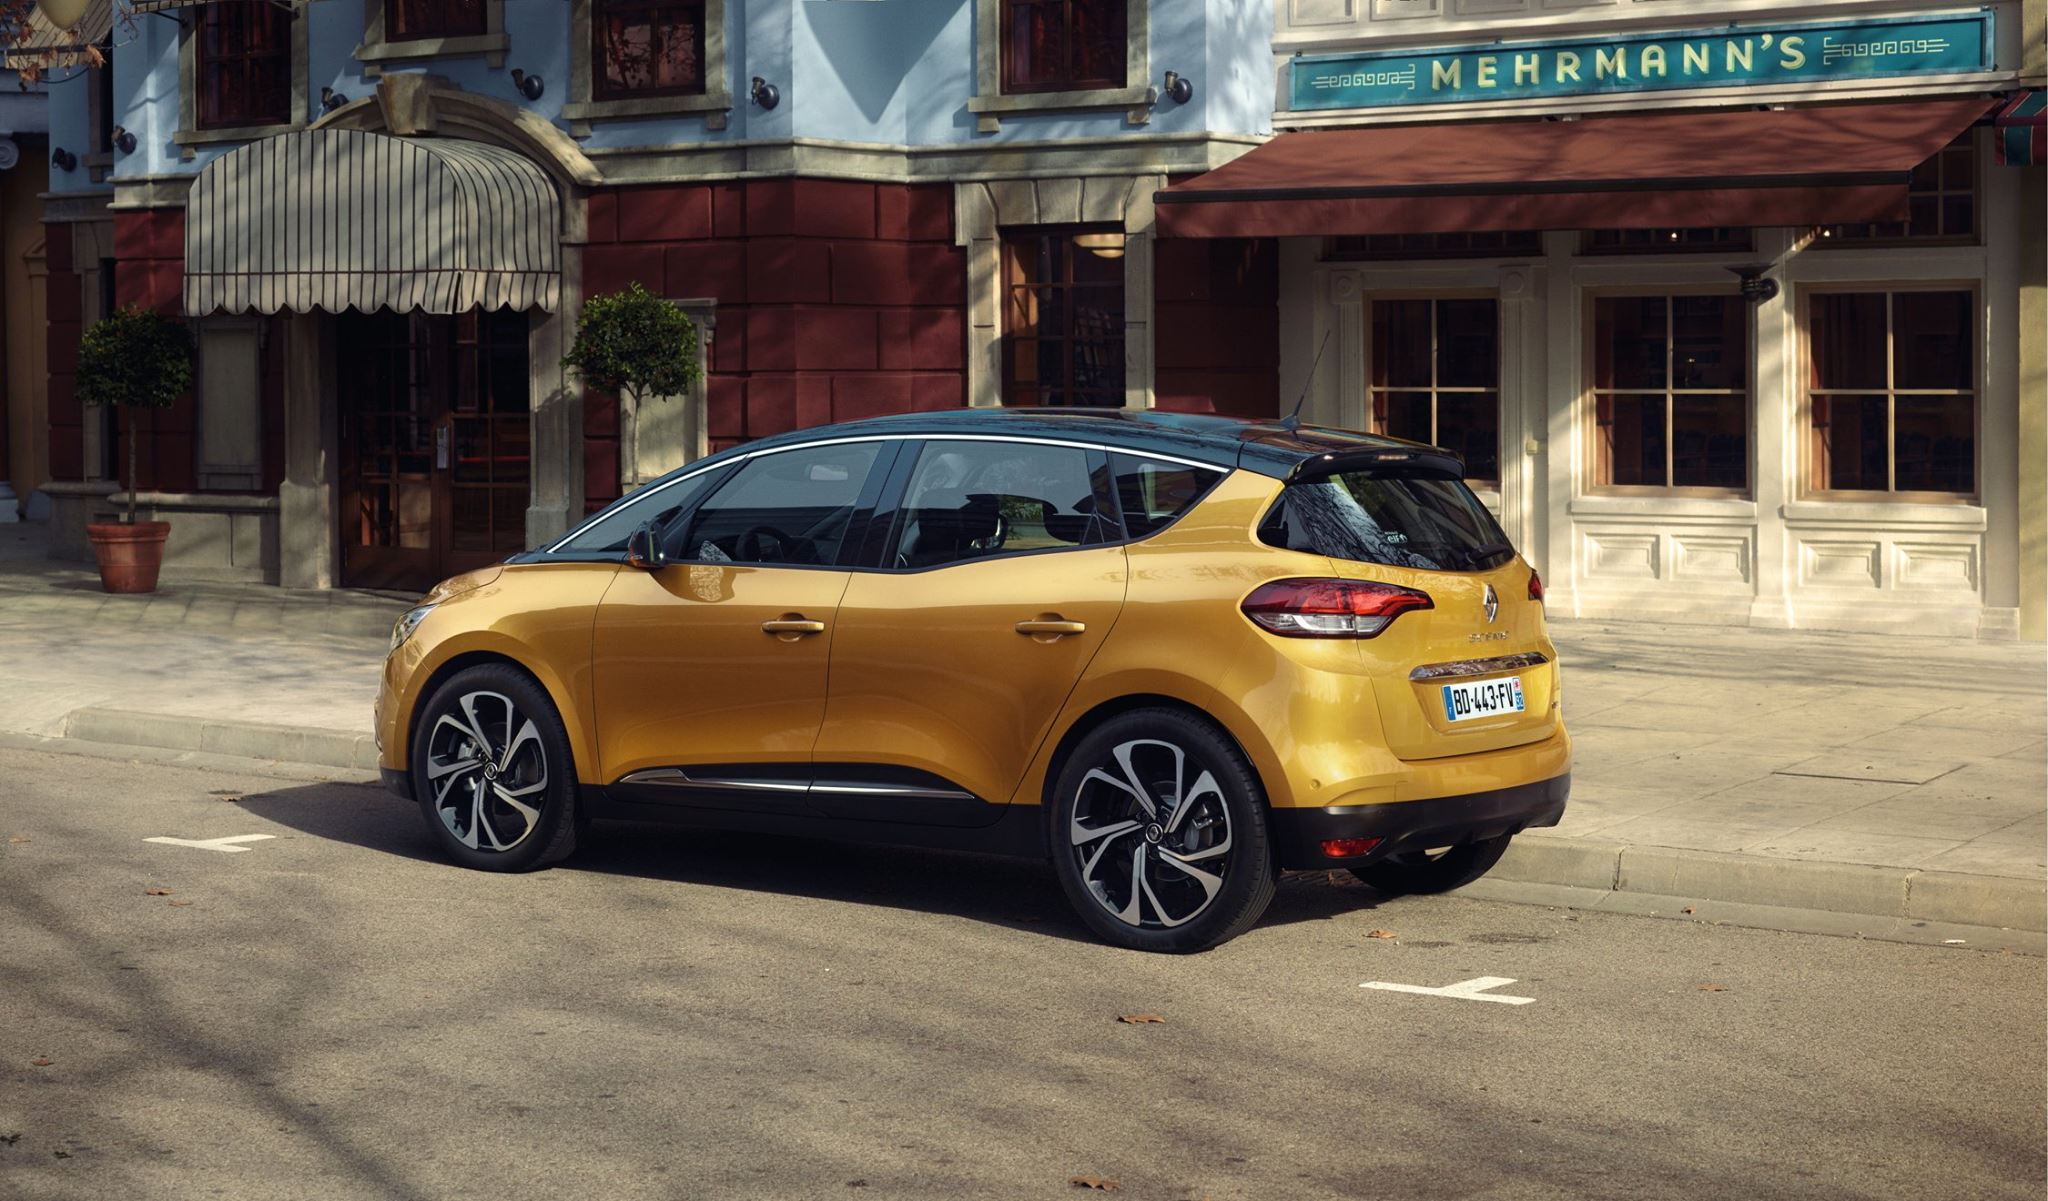 Renault Scenic IV 2016 - now Compact MPV #3